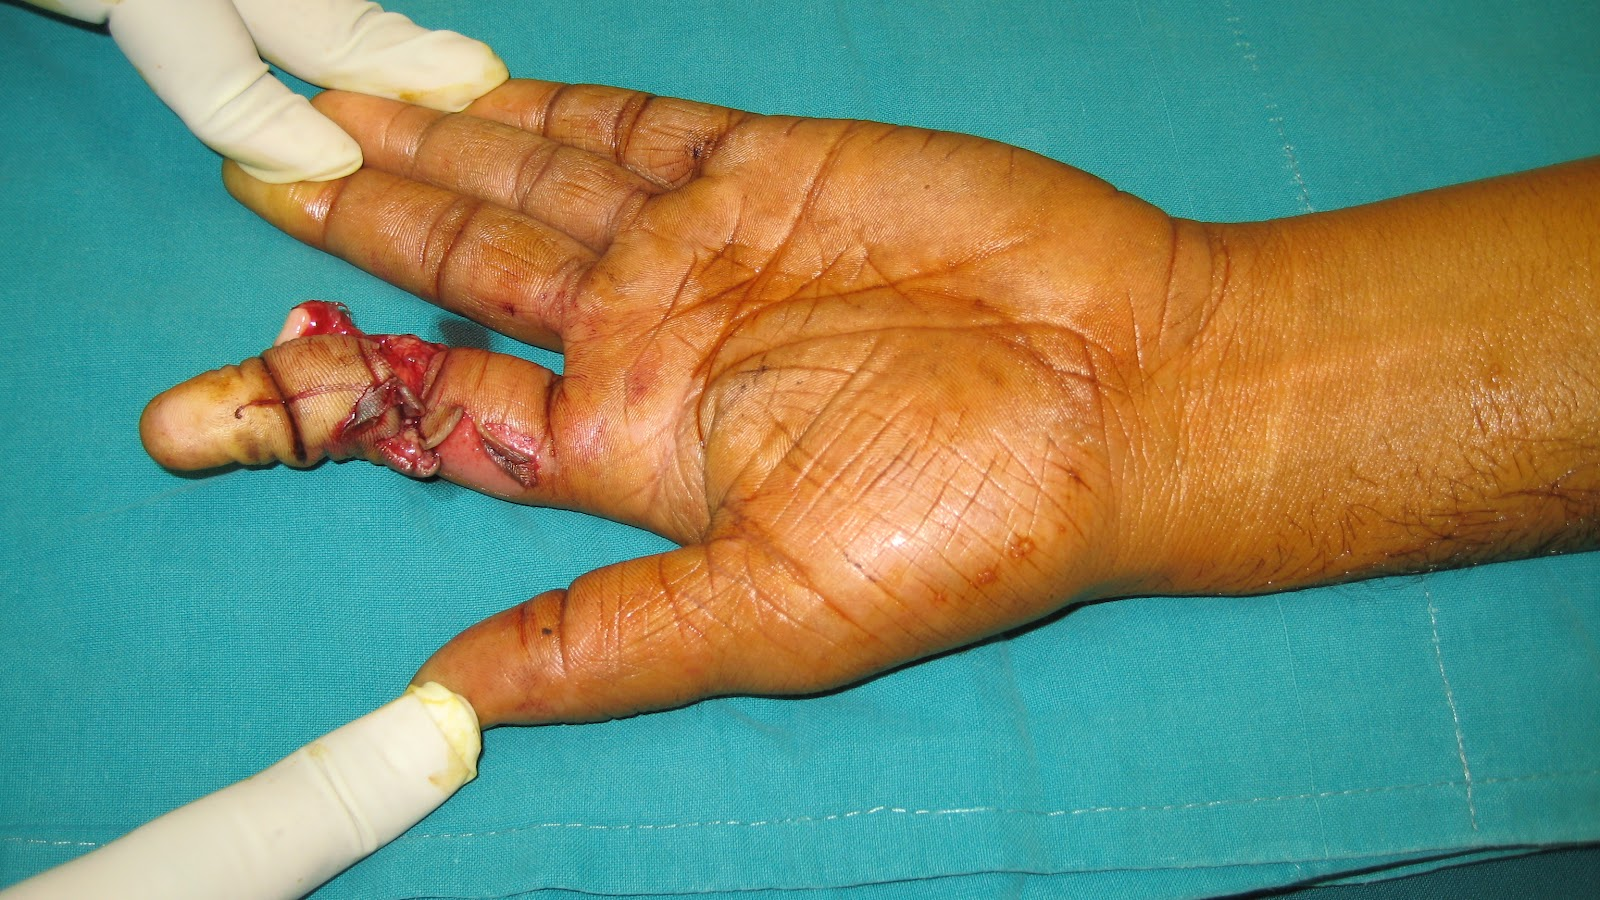 ring avulsion injury index finger hand groin flap coverage hand